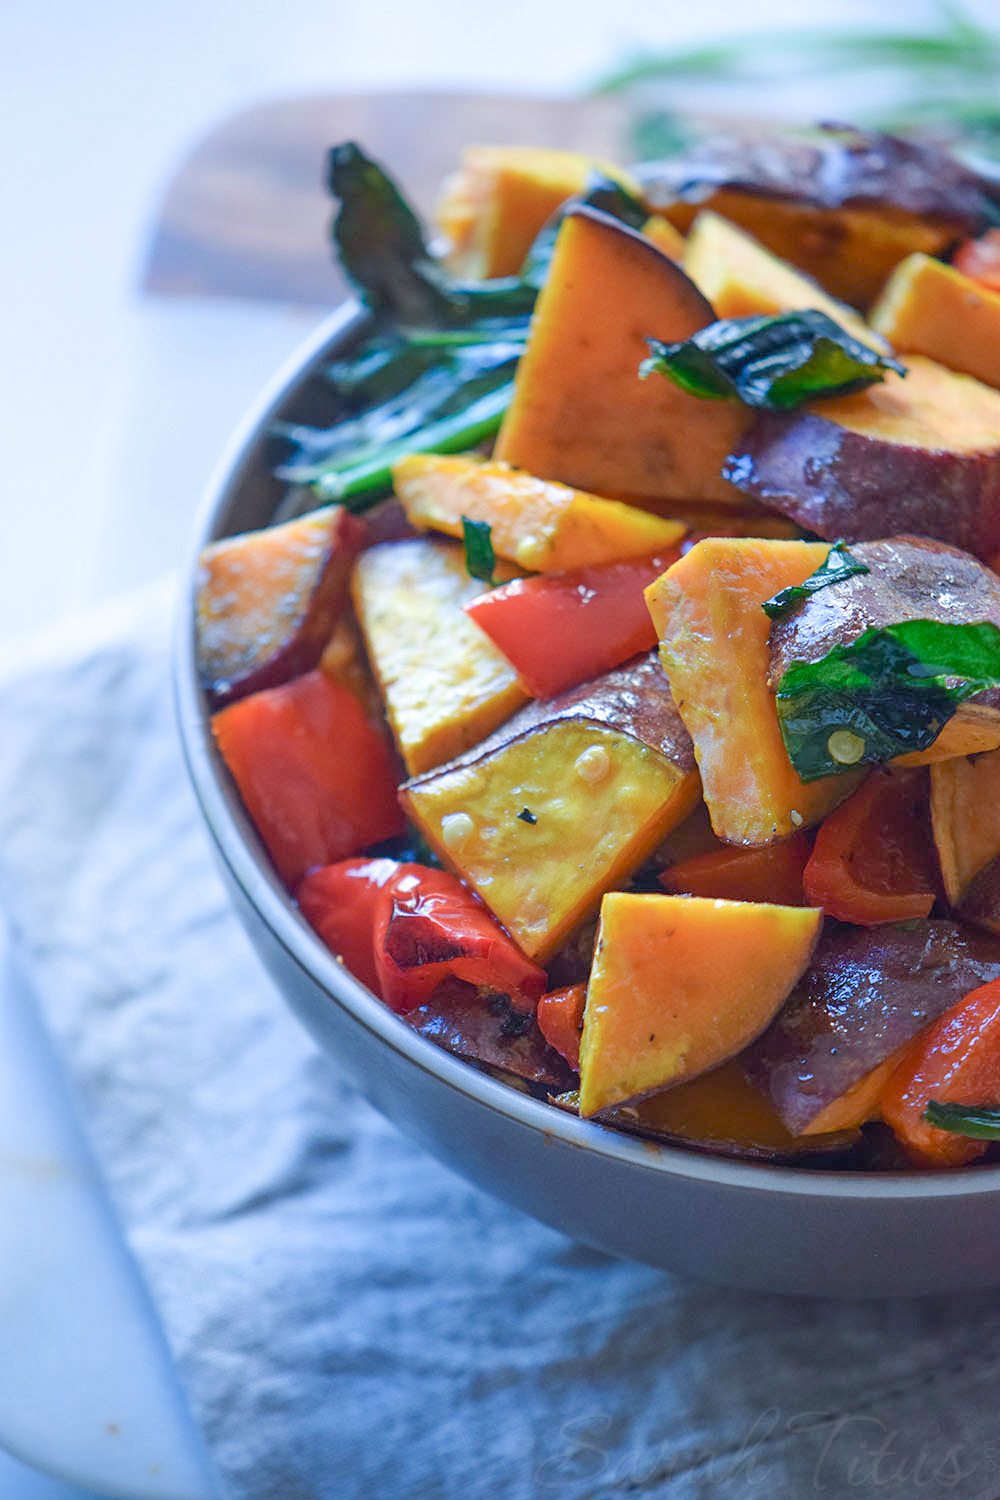 I'm all for bakes; chop up some stuff, put it in the oven, and dinners' ready in 15 mins! This tasty sweet potato bake is the perfect solution!!